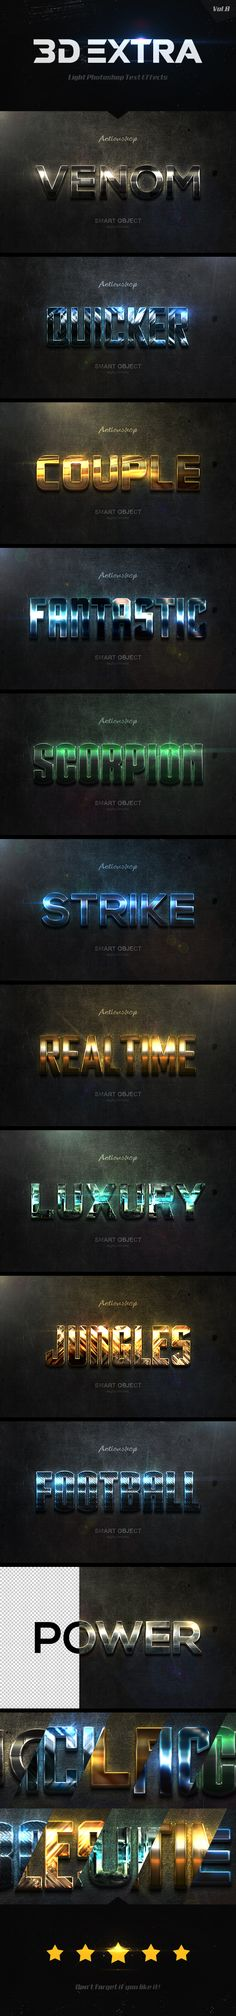 New 3D Extra Light Text Effects Vol.8 - Text Effects Styles